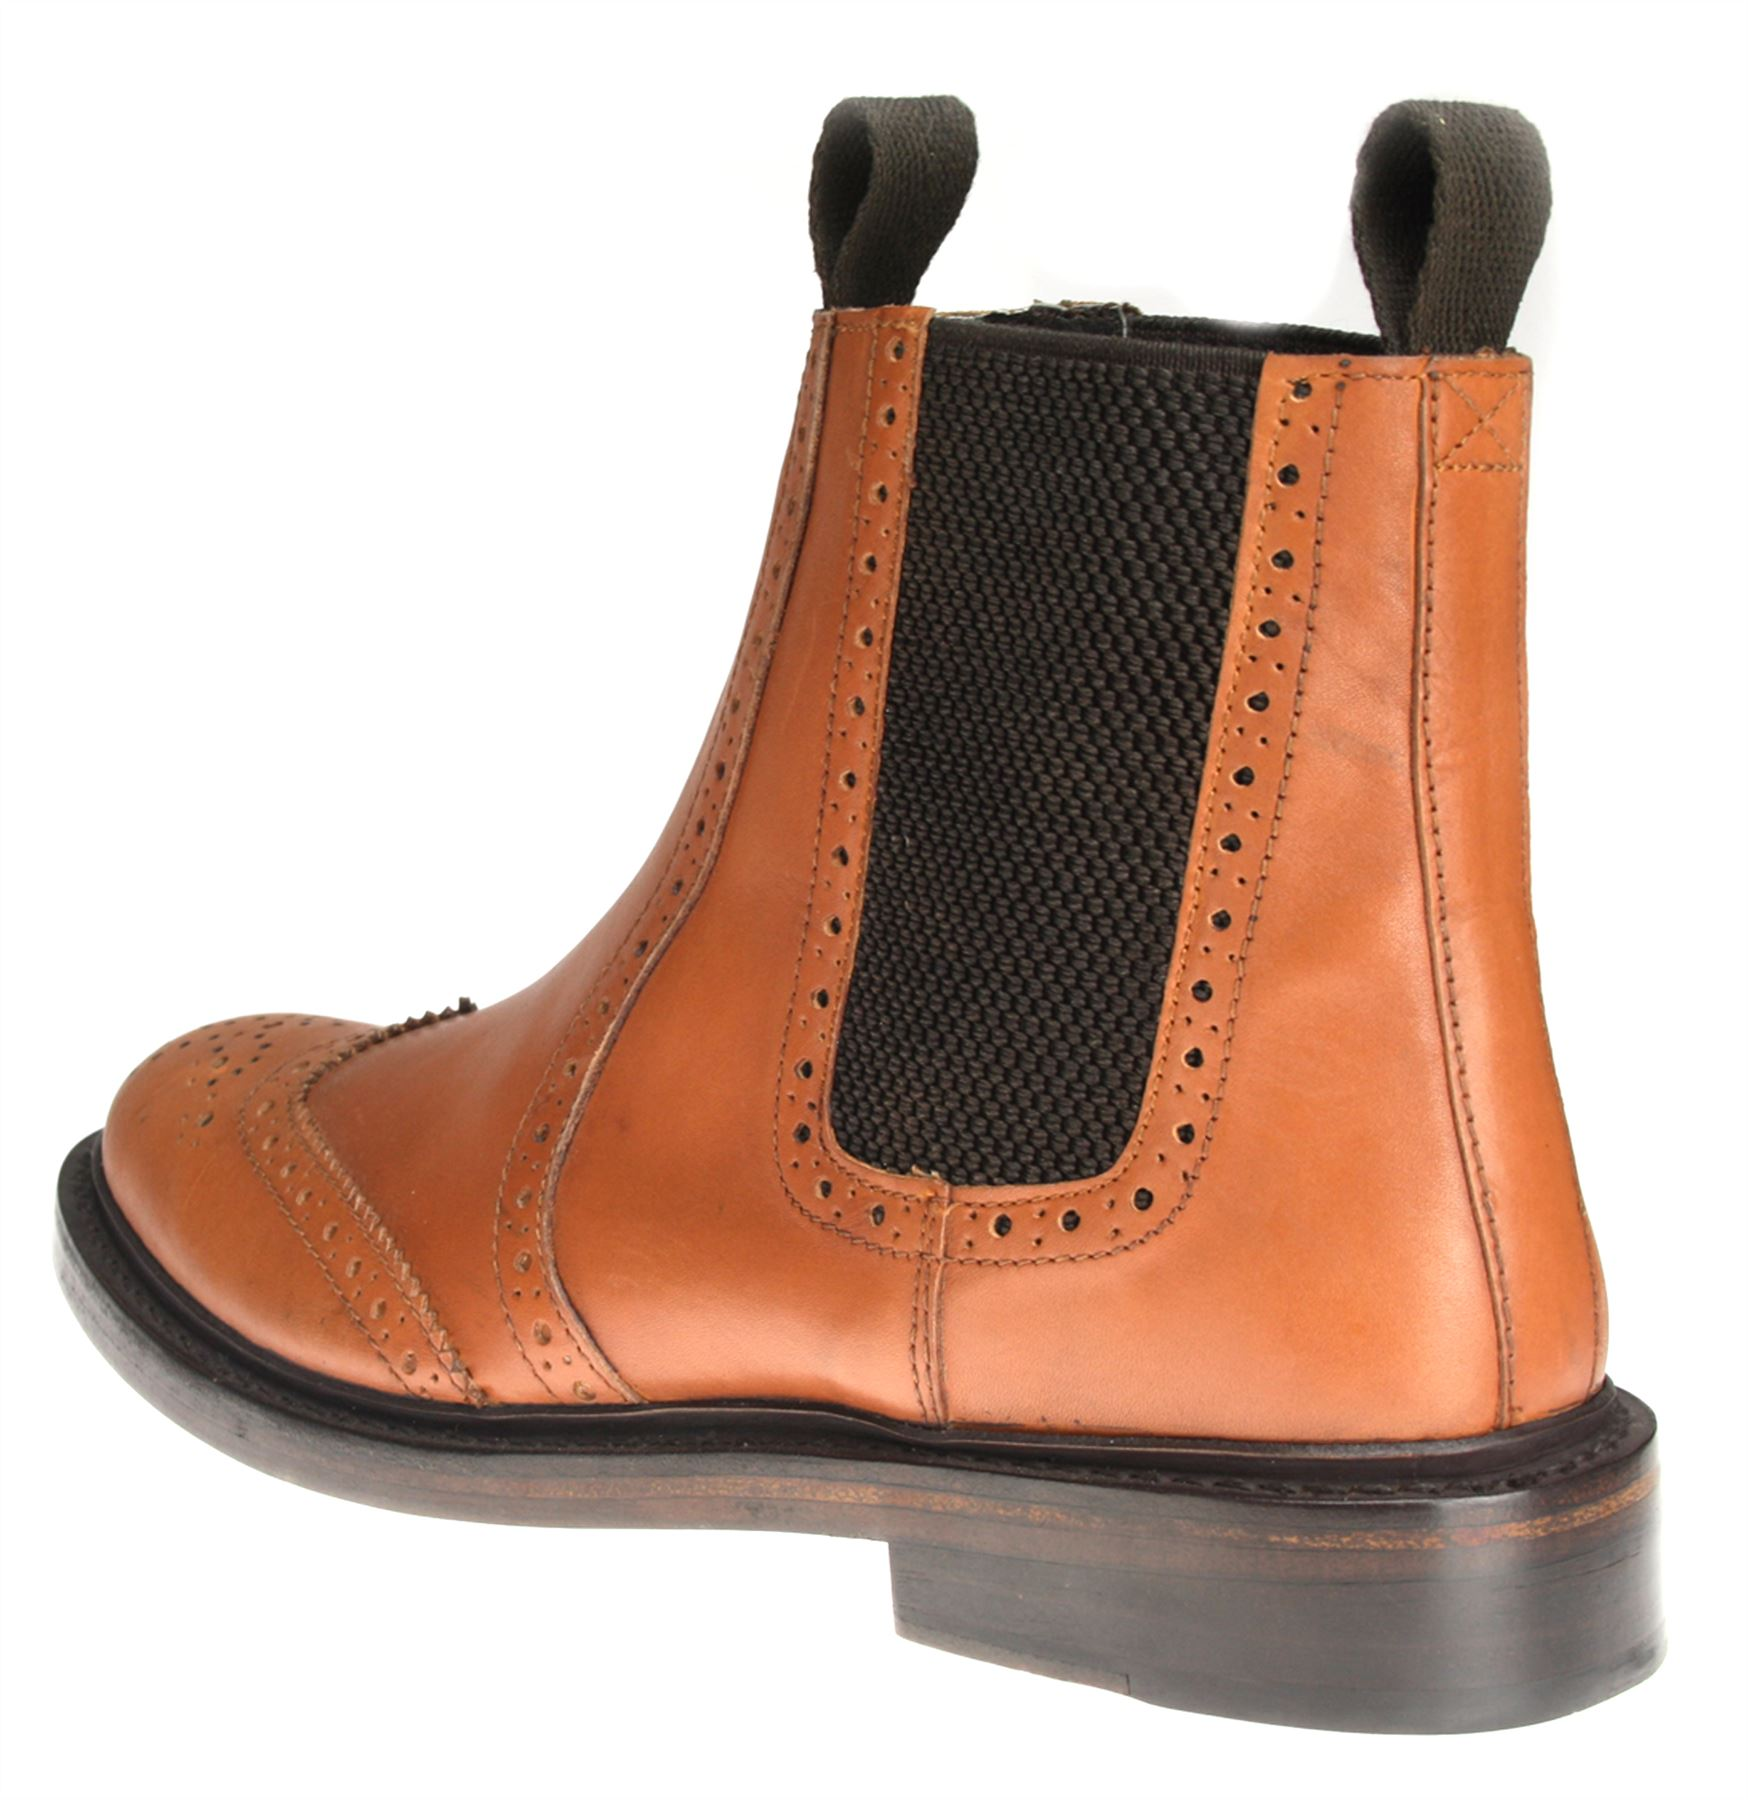 accd1aca9af Details about Benchgrade 1920 Mens Tan or Black All Leather Welted Chelsea  Brogue Dealer Boots